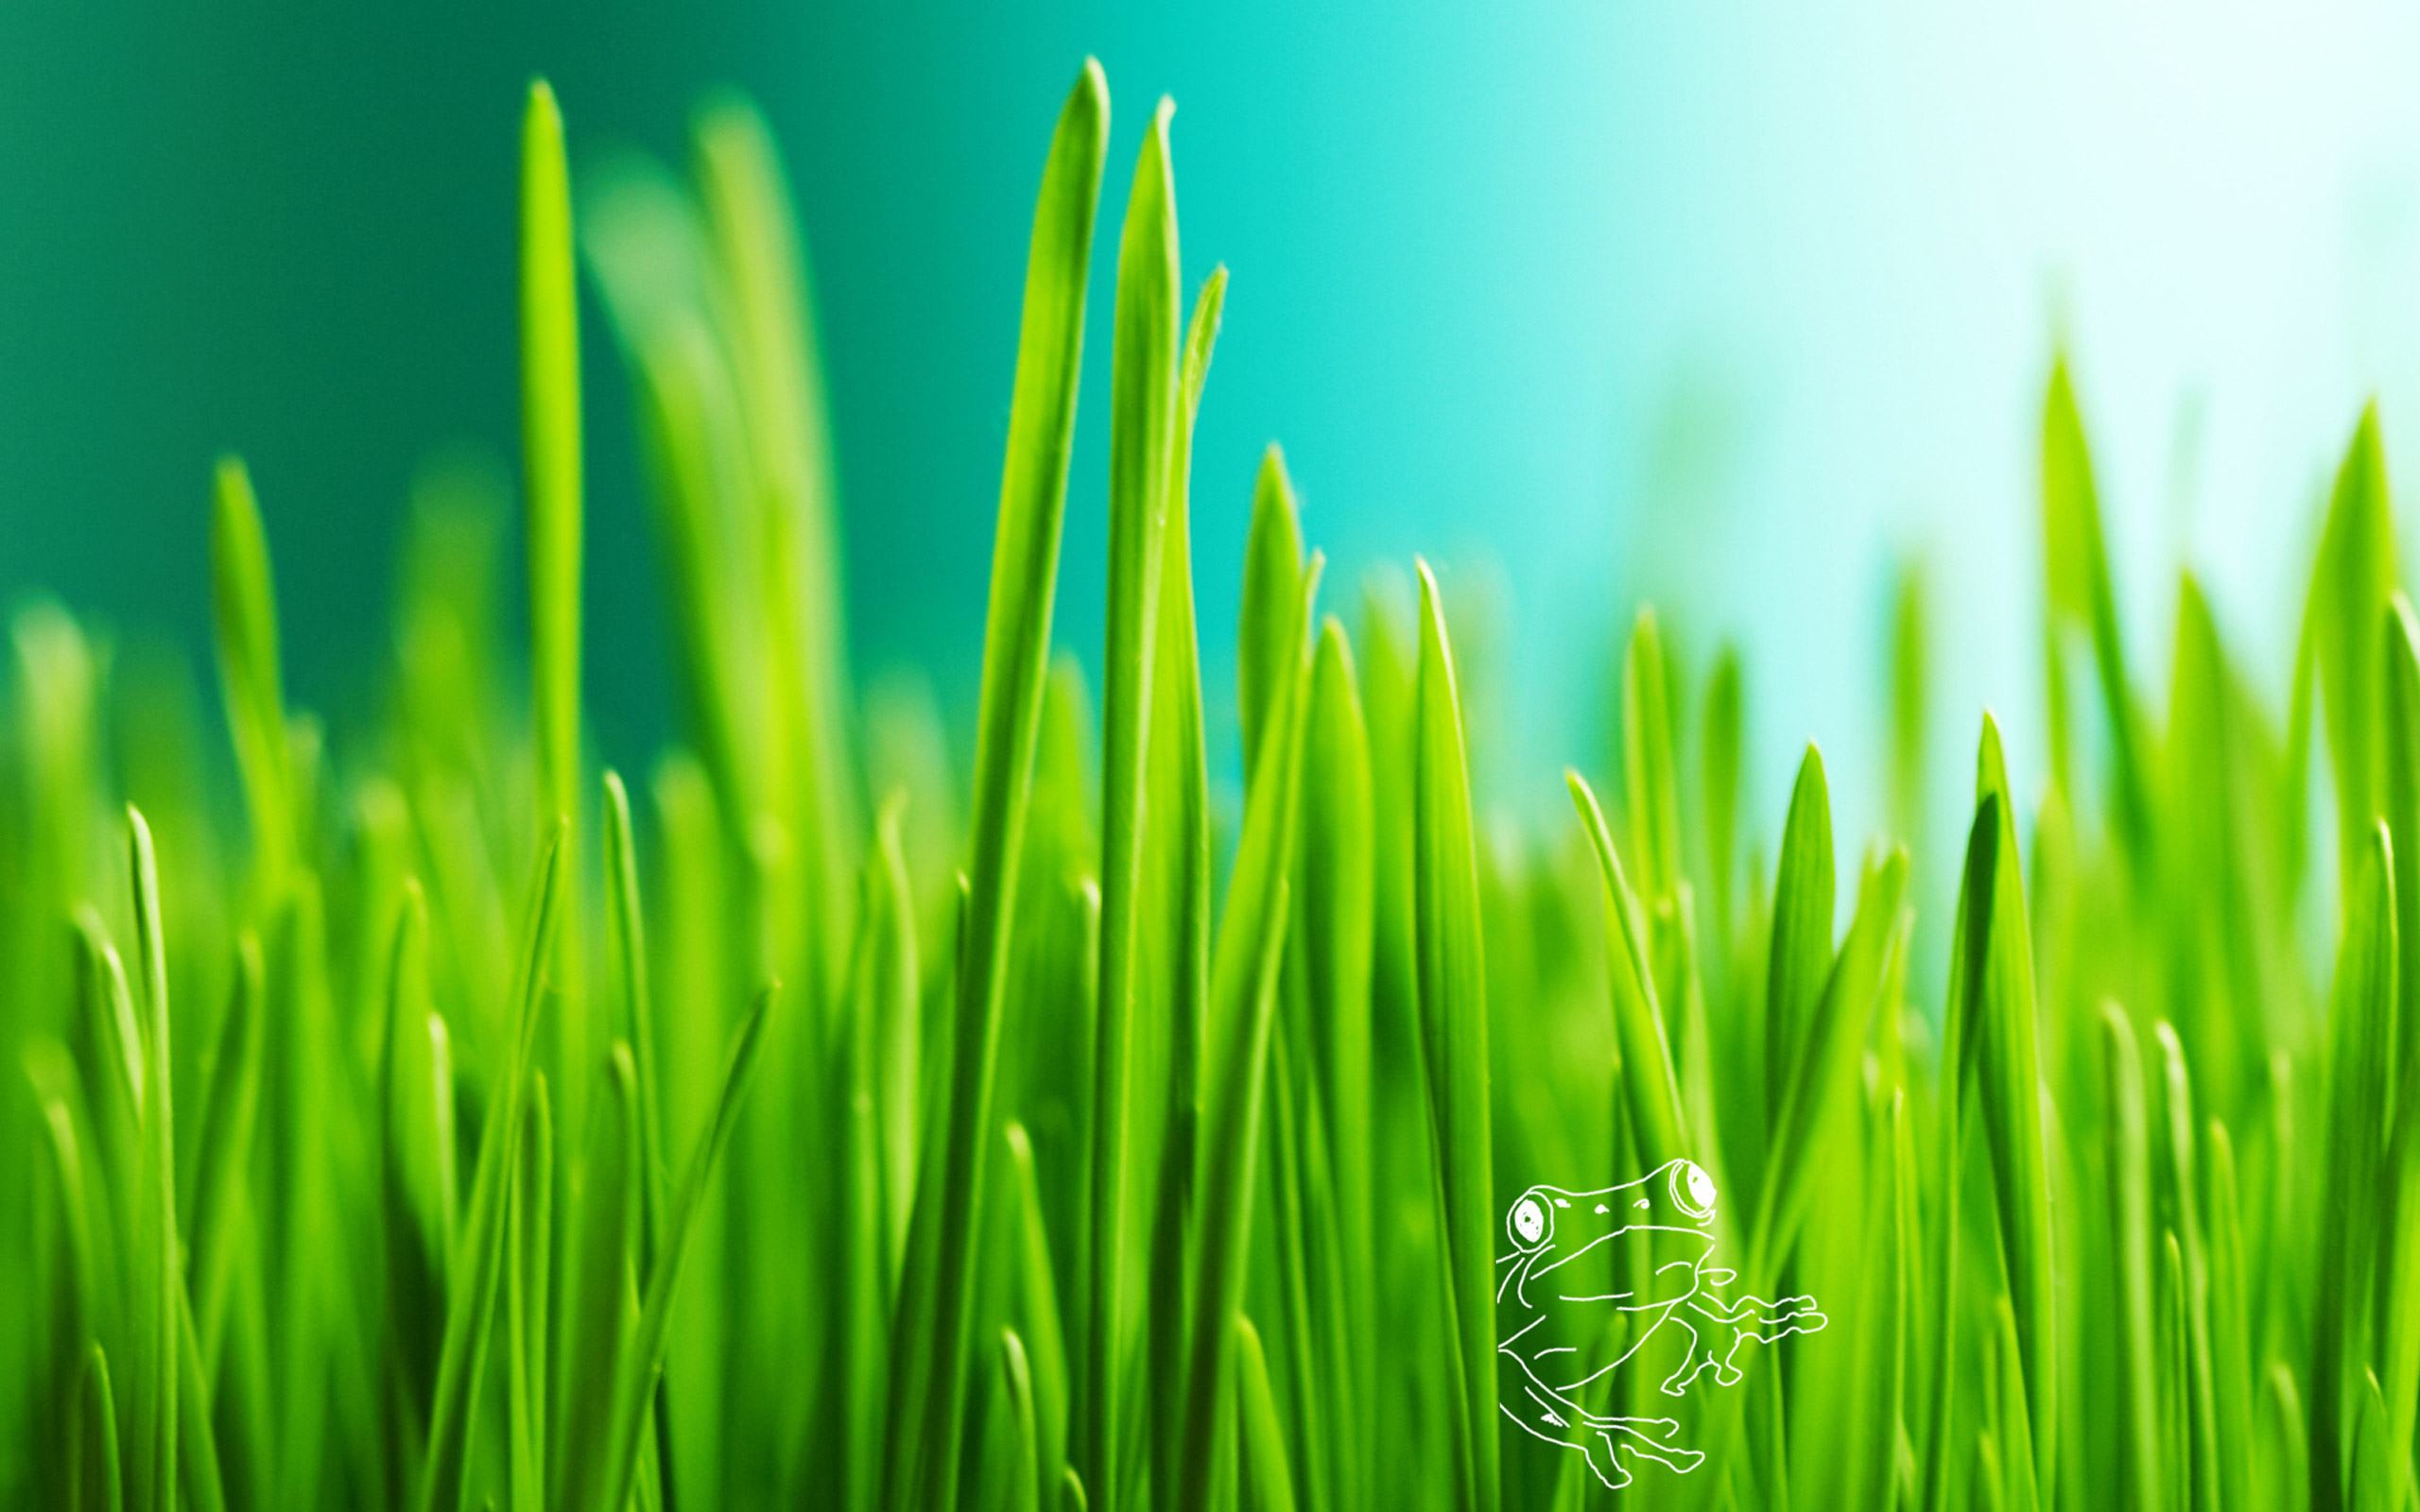 Full HD Quality Photos: Grass, 2560x1600 px